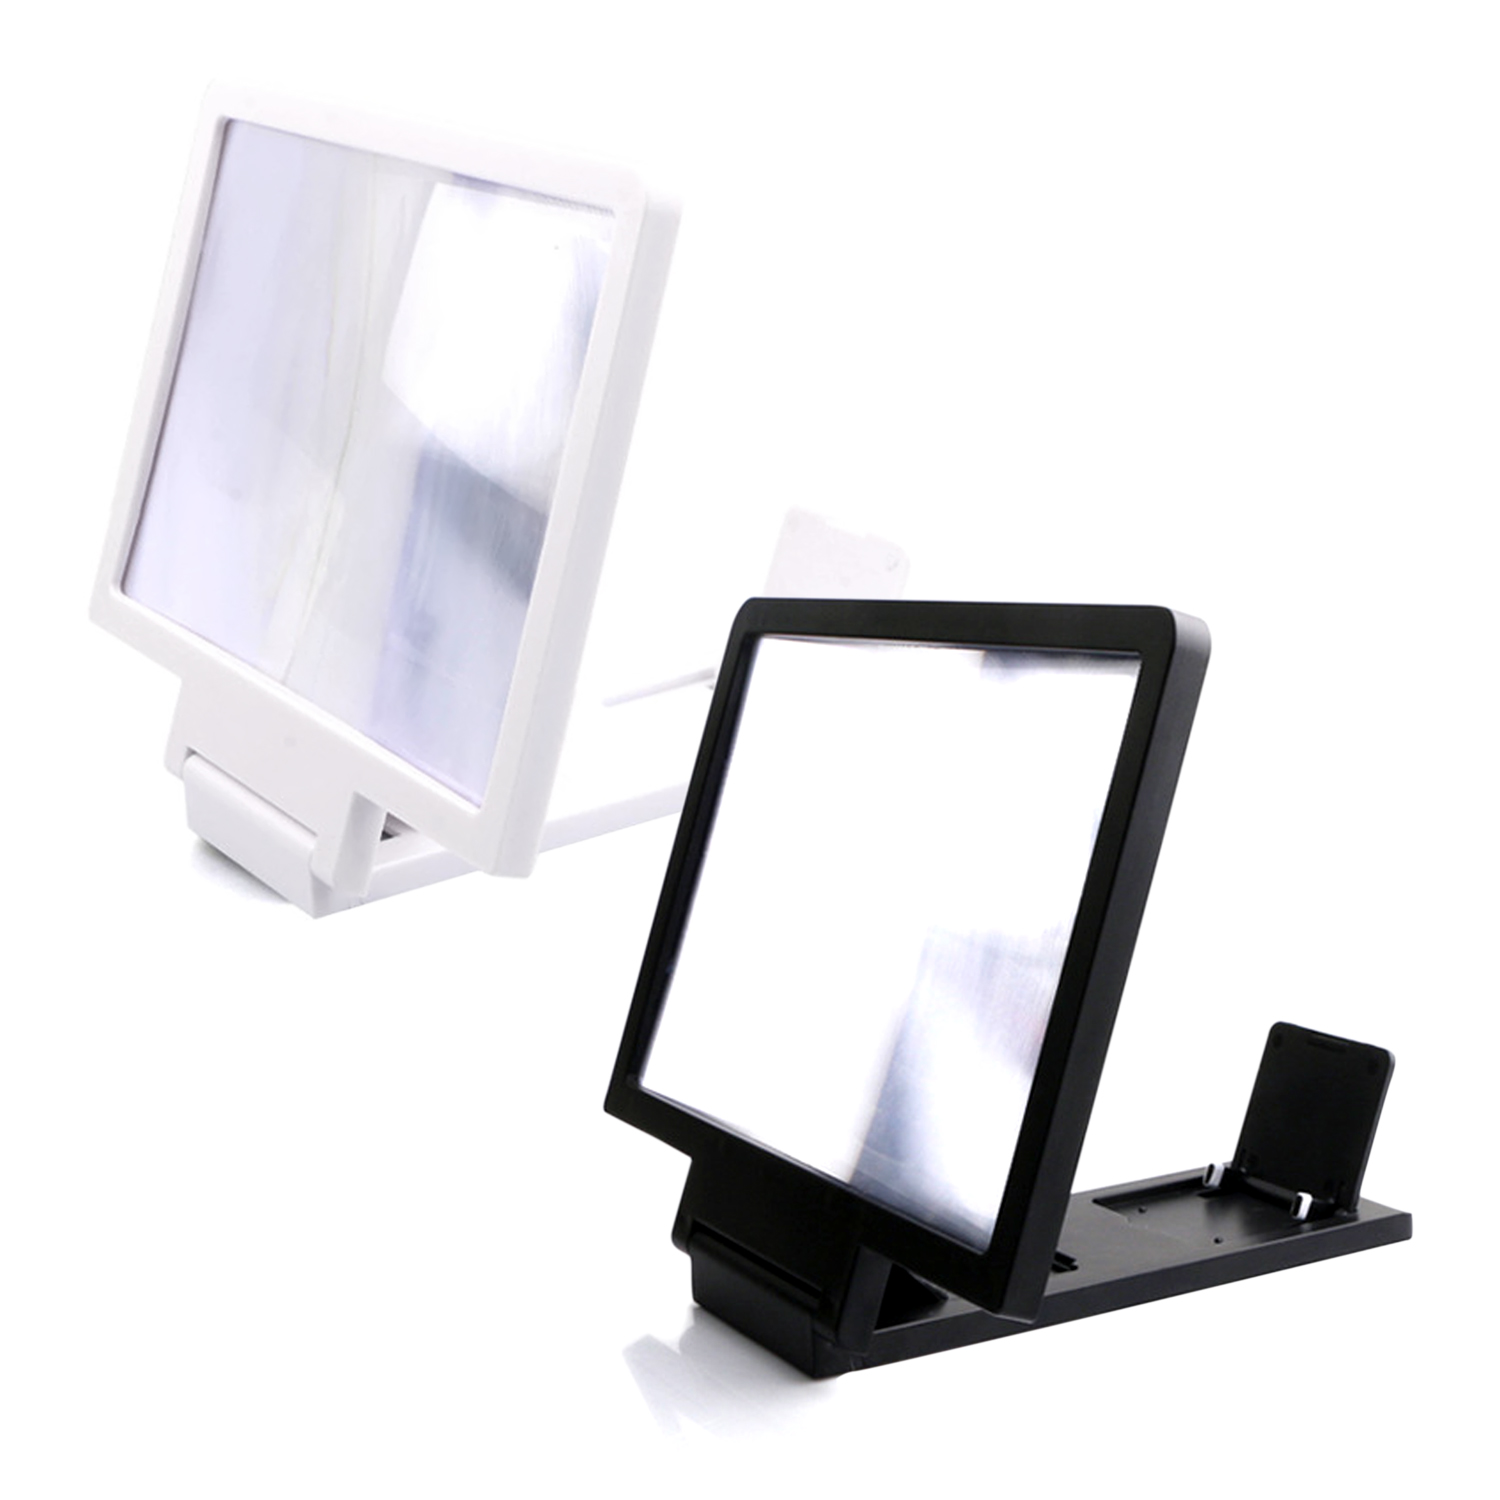 Anti-Radiation,Black L.HPT Screen Magnifier Smartphone Magnifying Glass 3D Mobile Phone Enlarger Screen Movie Video Screen Amplifier Bracket Desktop Foldable Stand Holder for iPhone Smartphone